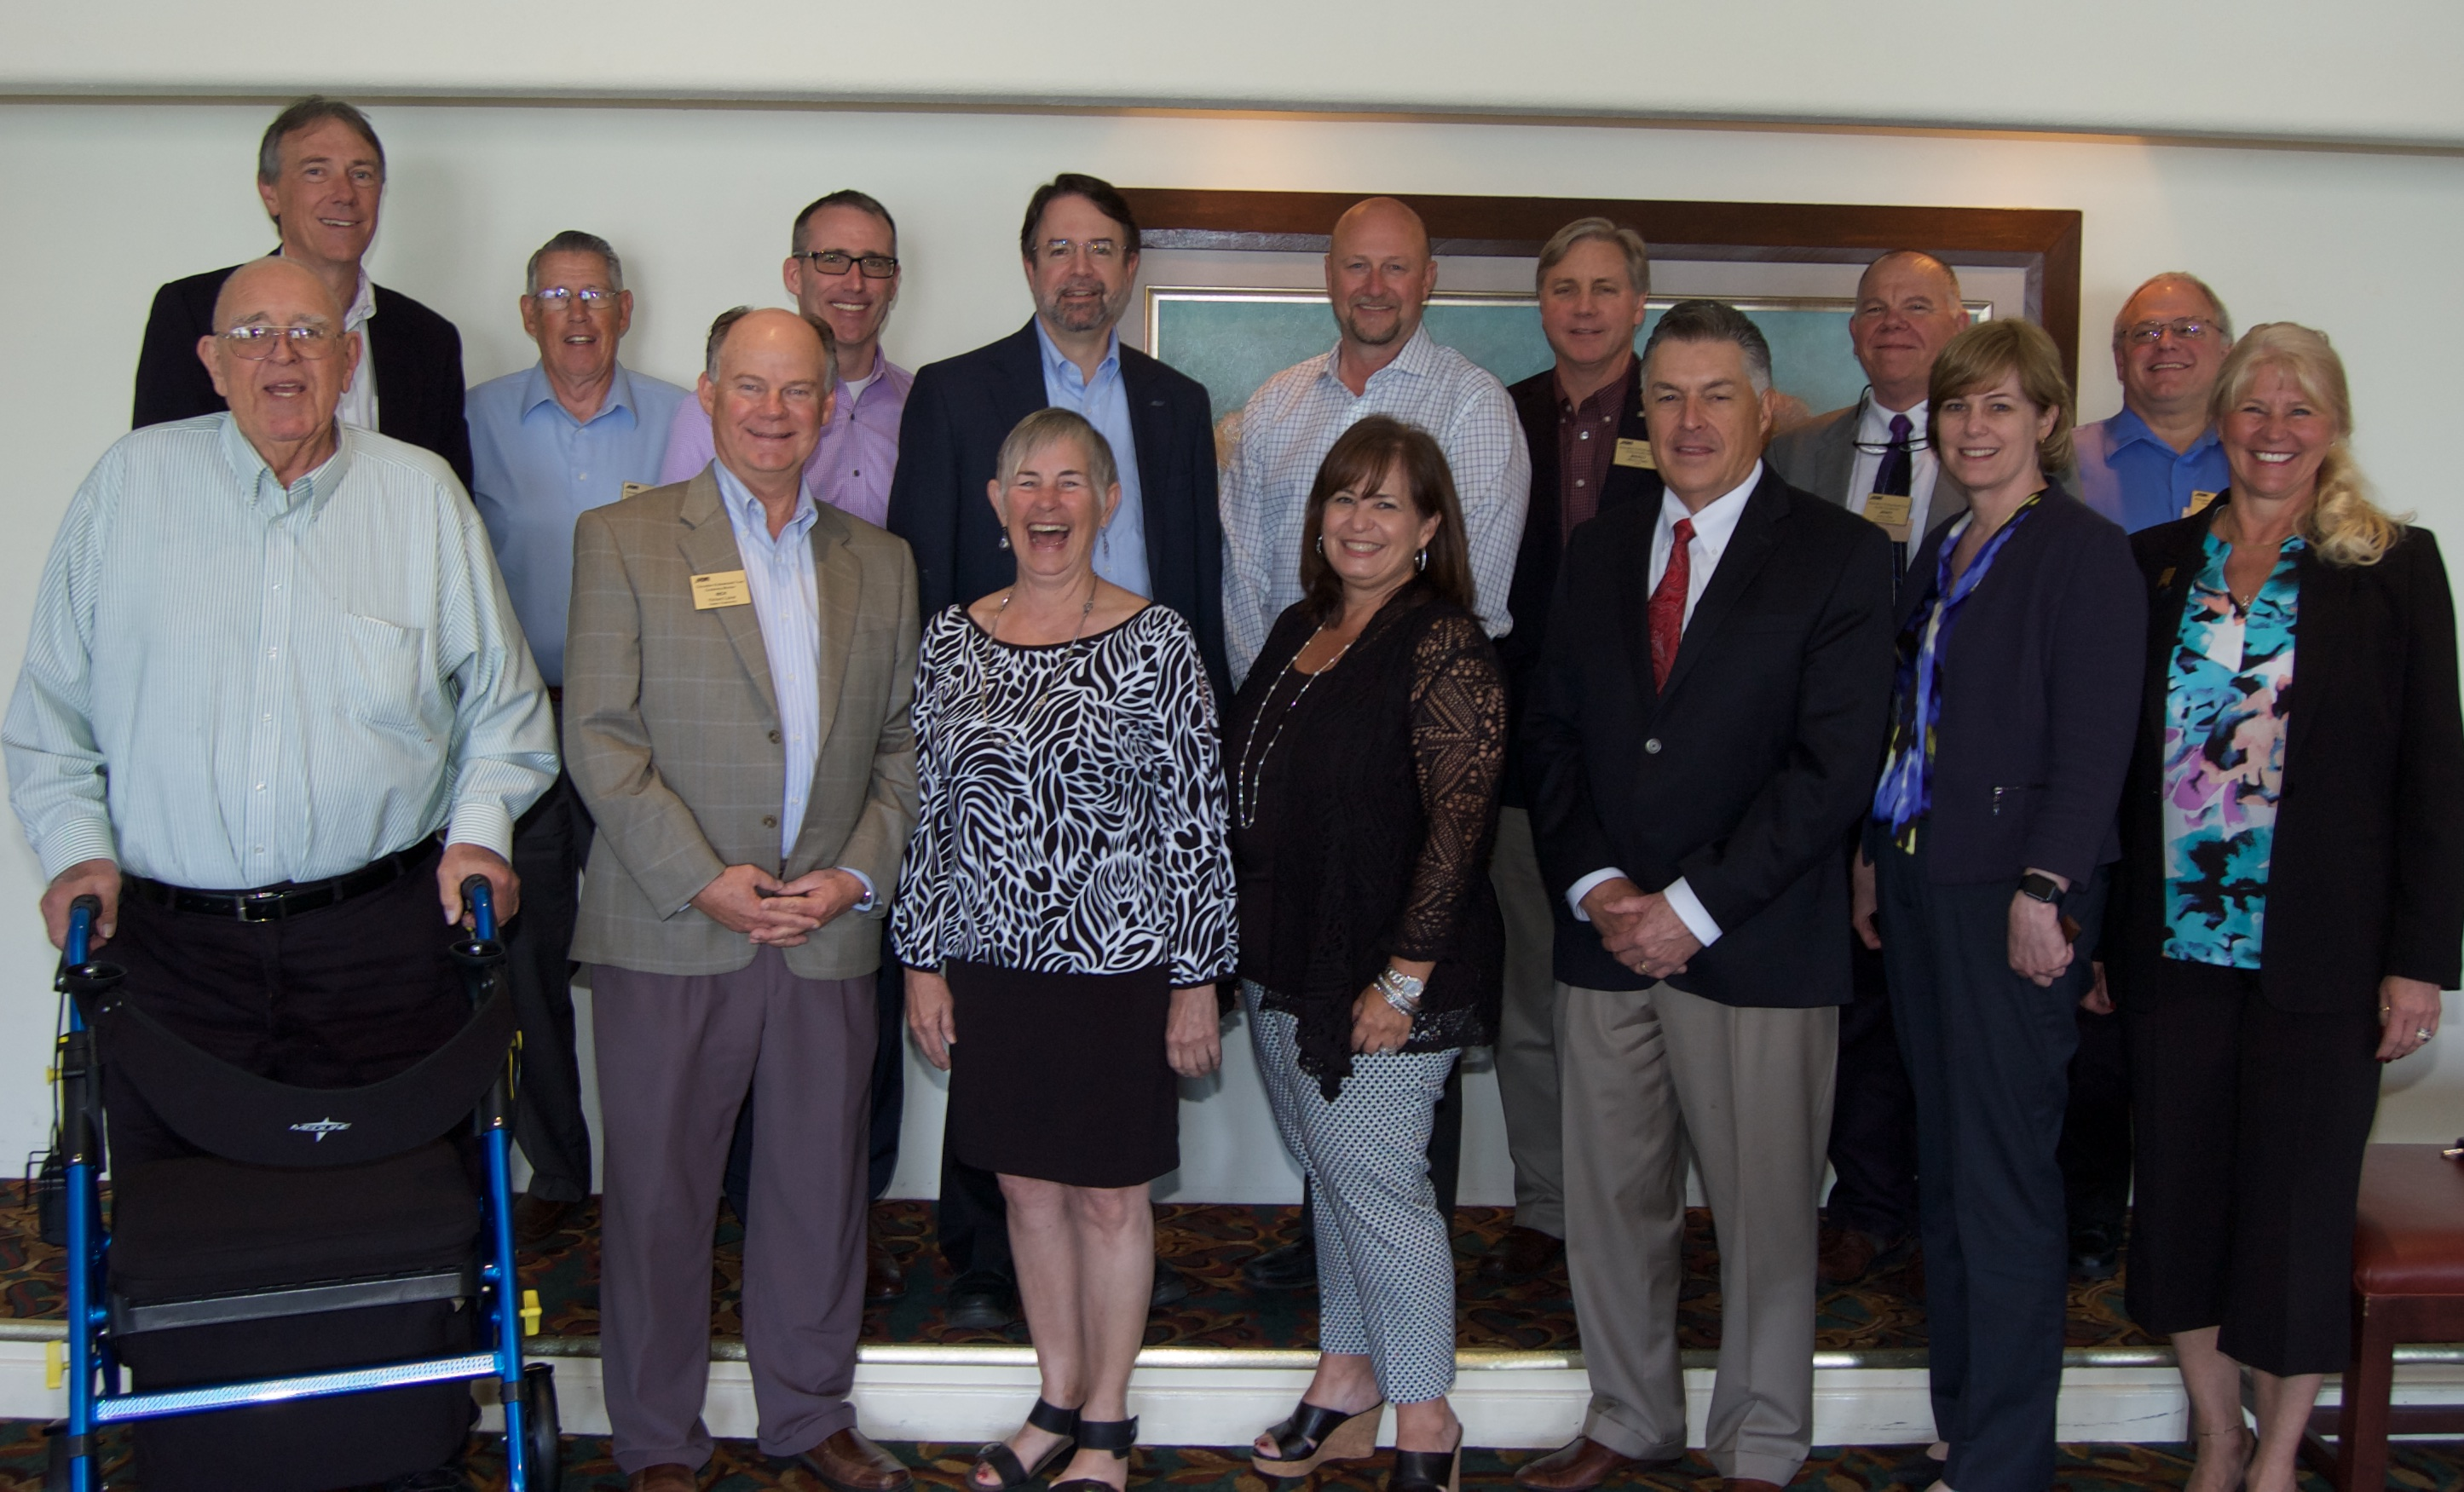 APWA April 2016, PWI and Past Presidents 41.jpg